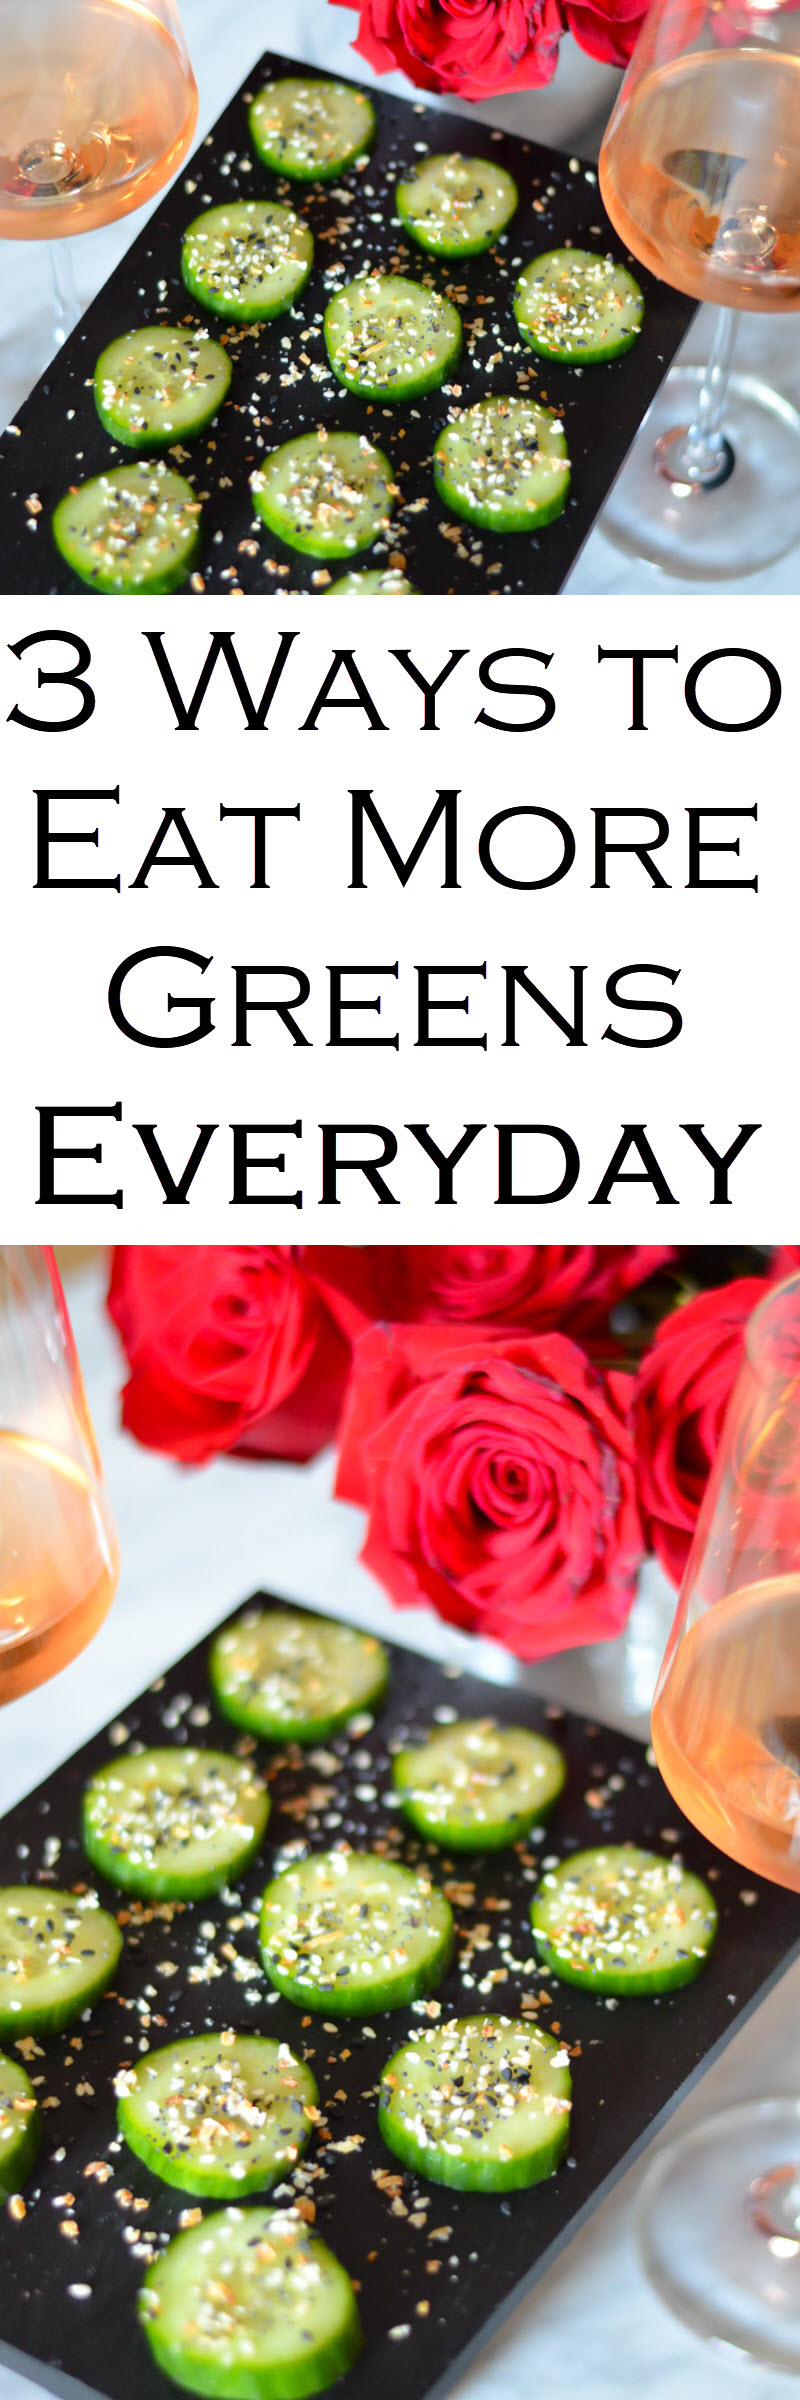 How to Eat More Greens Everyday #LMrecipes #healthy #healthytips #weightloss #weightlosstips #greens #eating #weightwatchers #vegan #vegetarian #grainfree #atkins #jennycraig